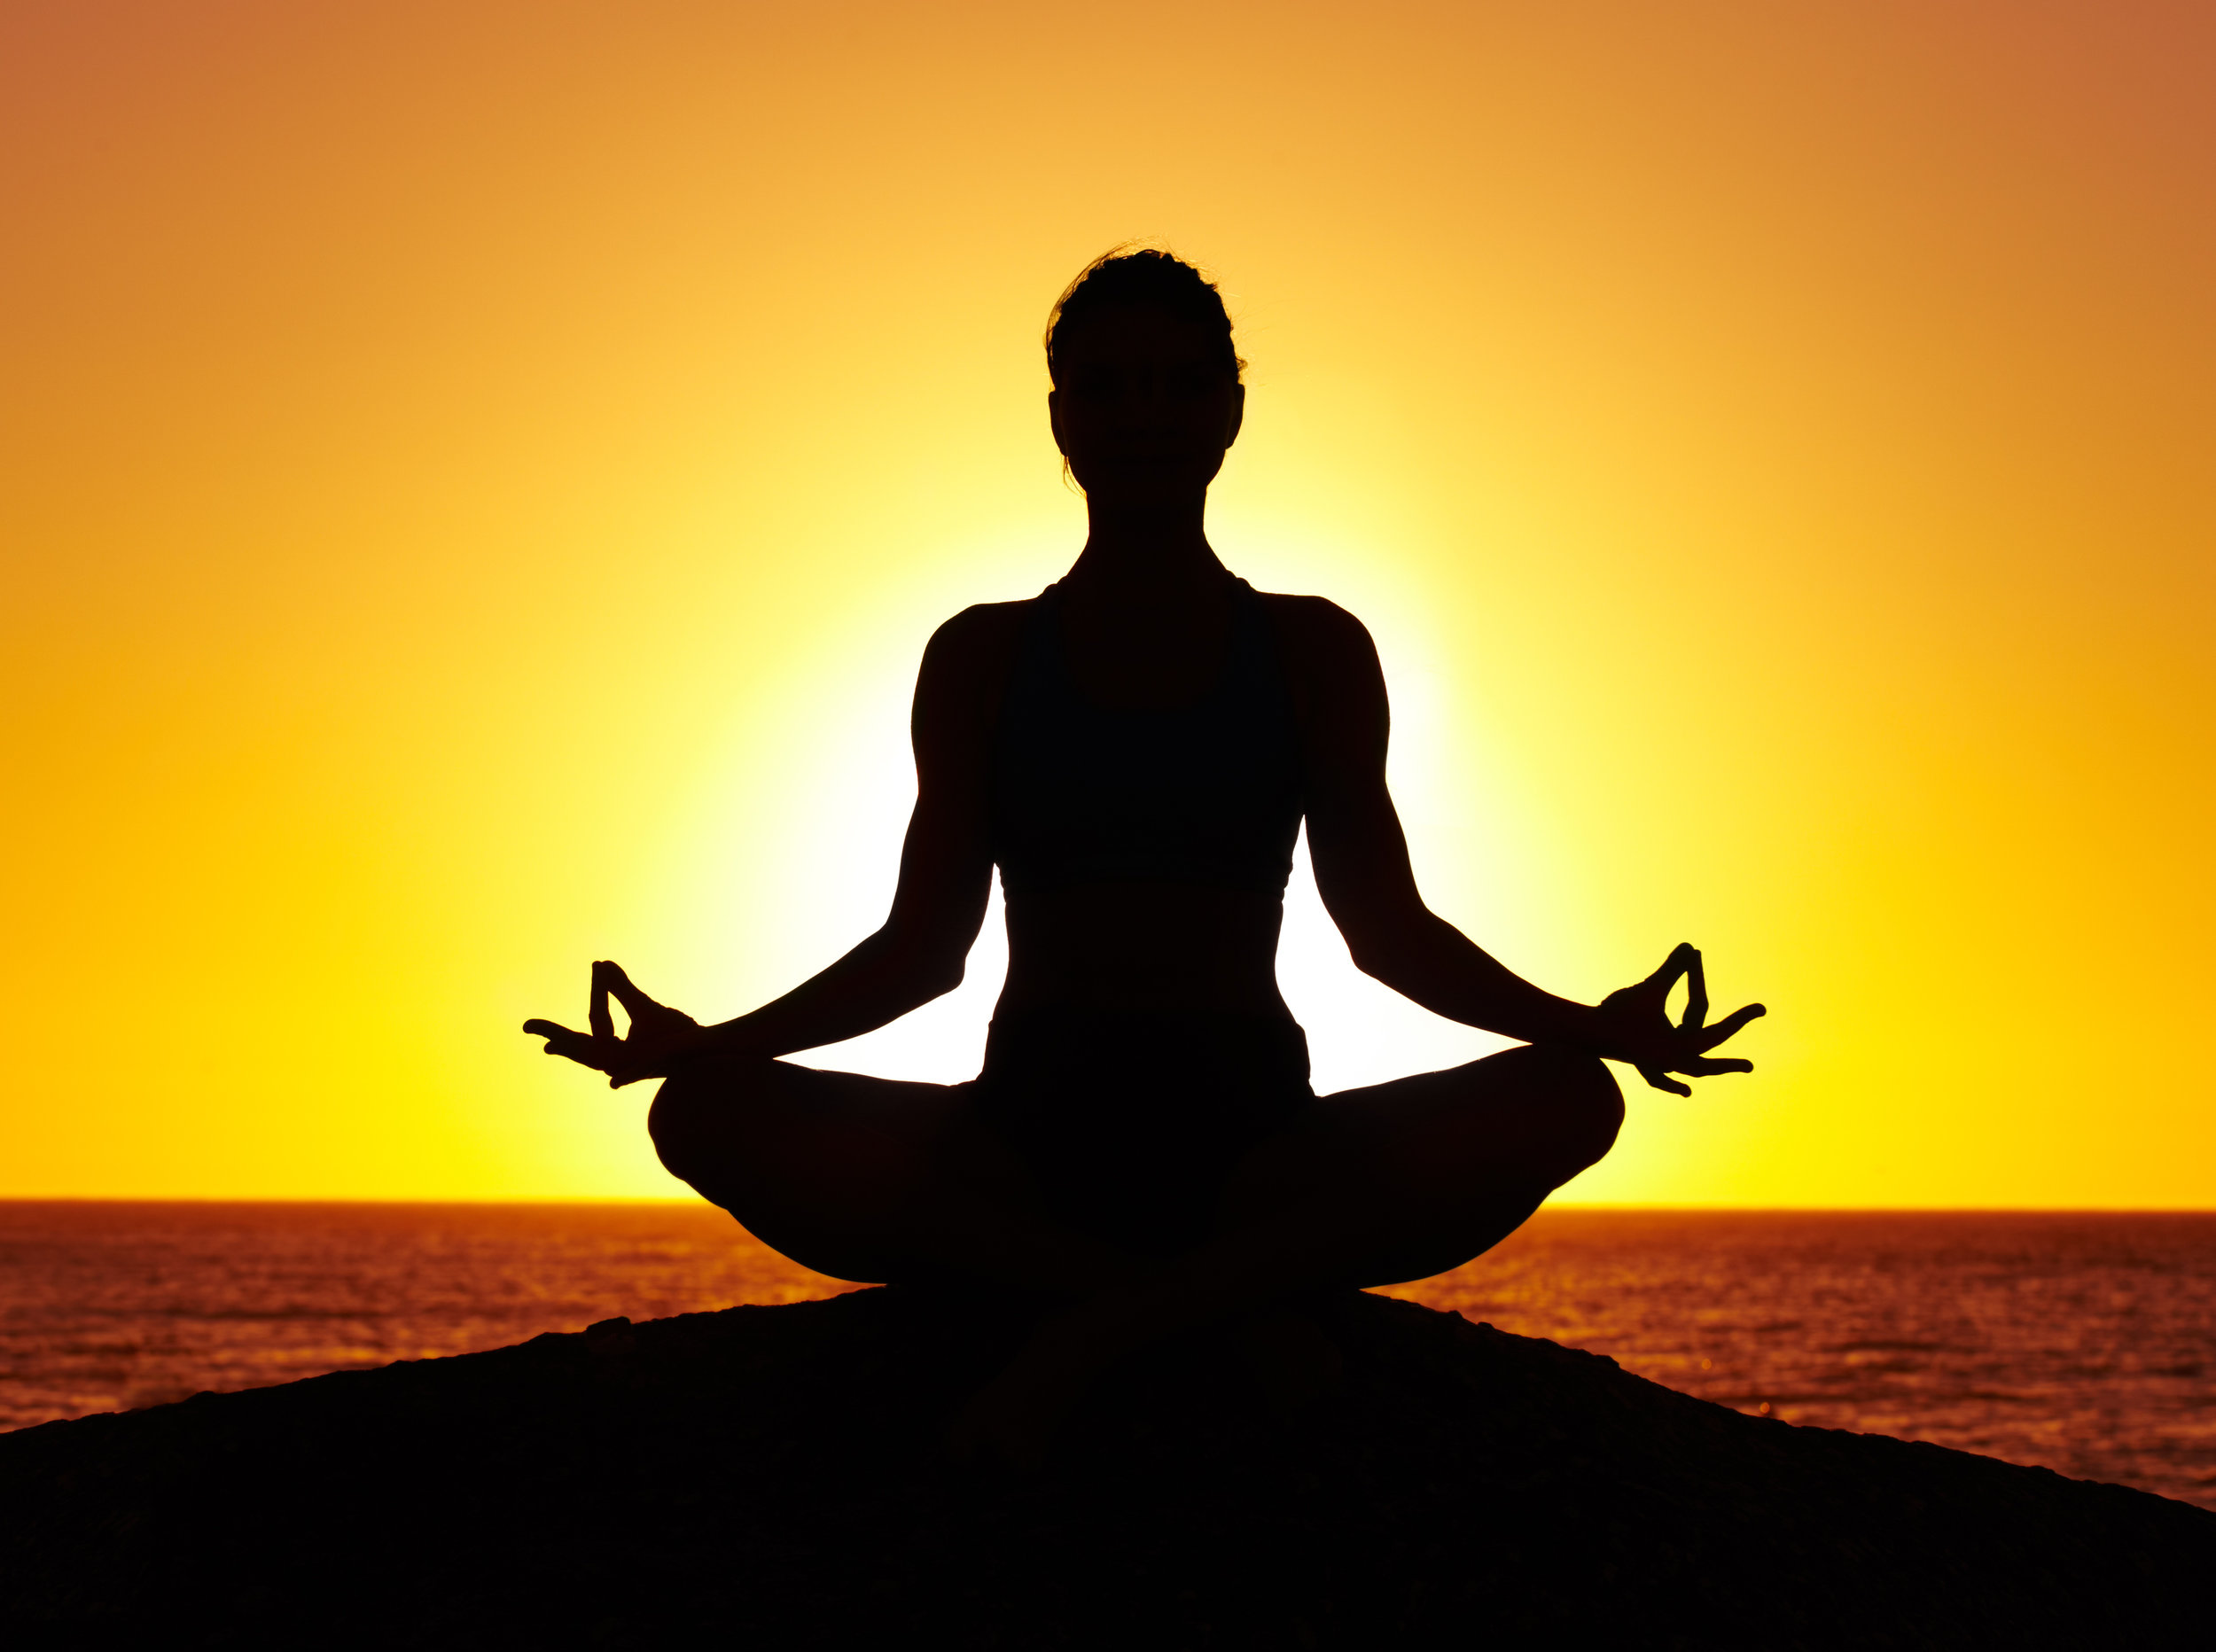 A woman meditating outside while the sun sets. Meditation and reducing stress can help prevent and reverse dementia and cognitive decline.